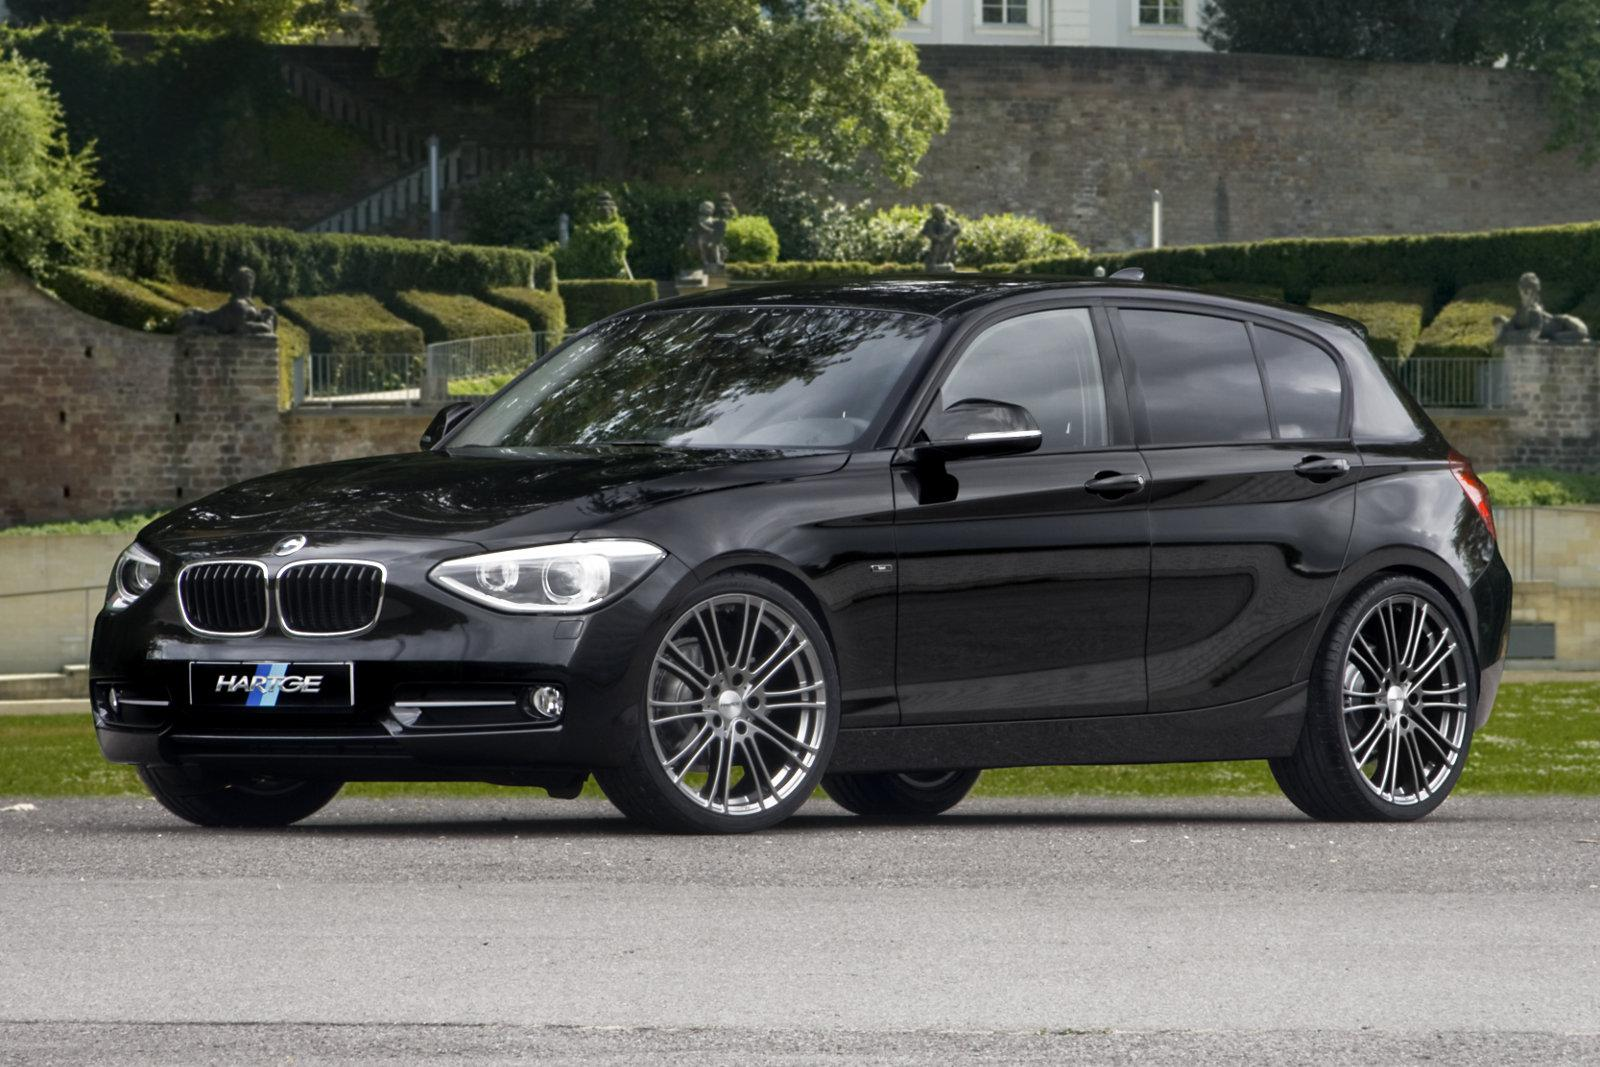 bmw 1 series by hartge car tuning styling. Black Bedroom Furniture Sets. Home Design Ideas